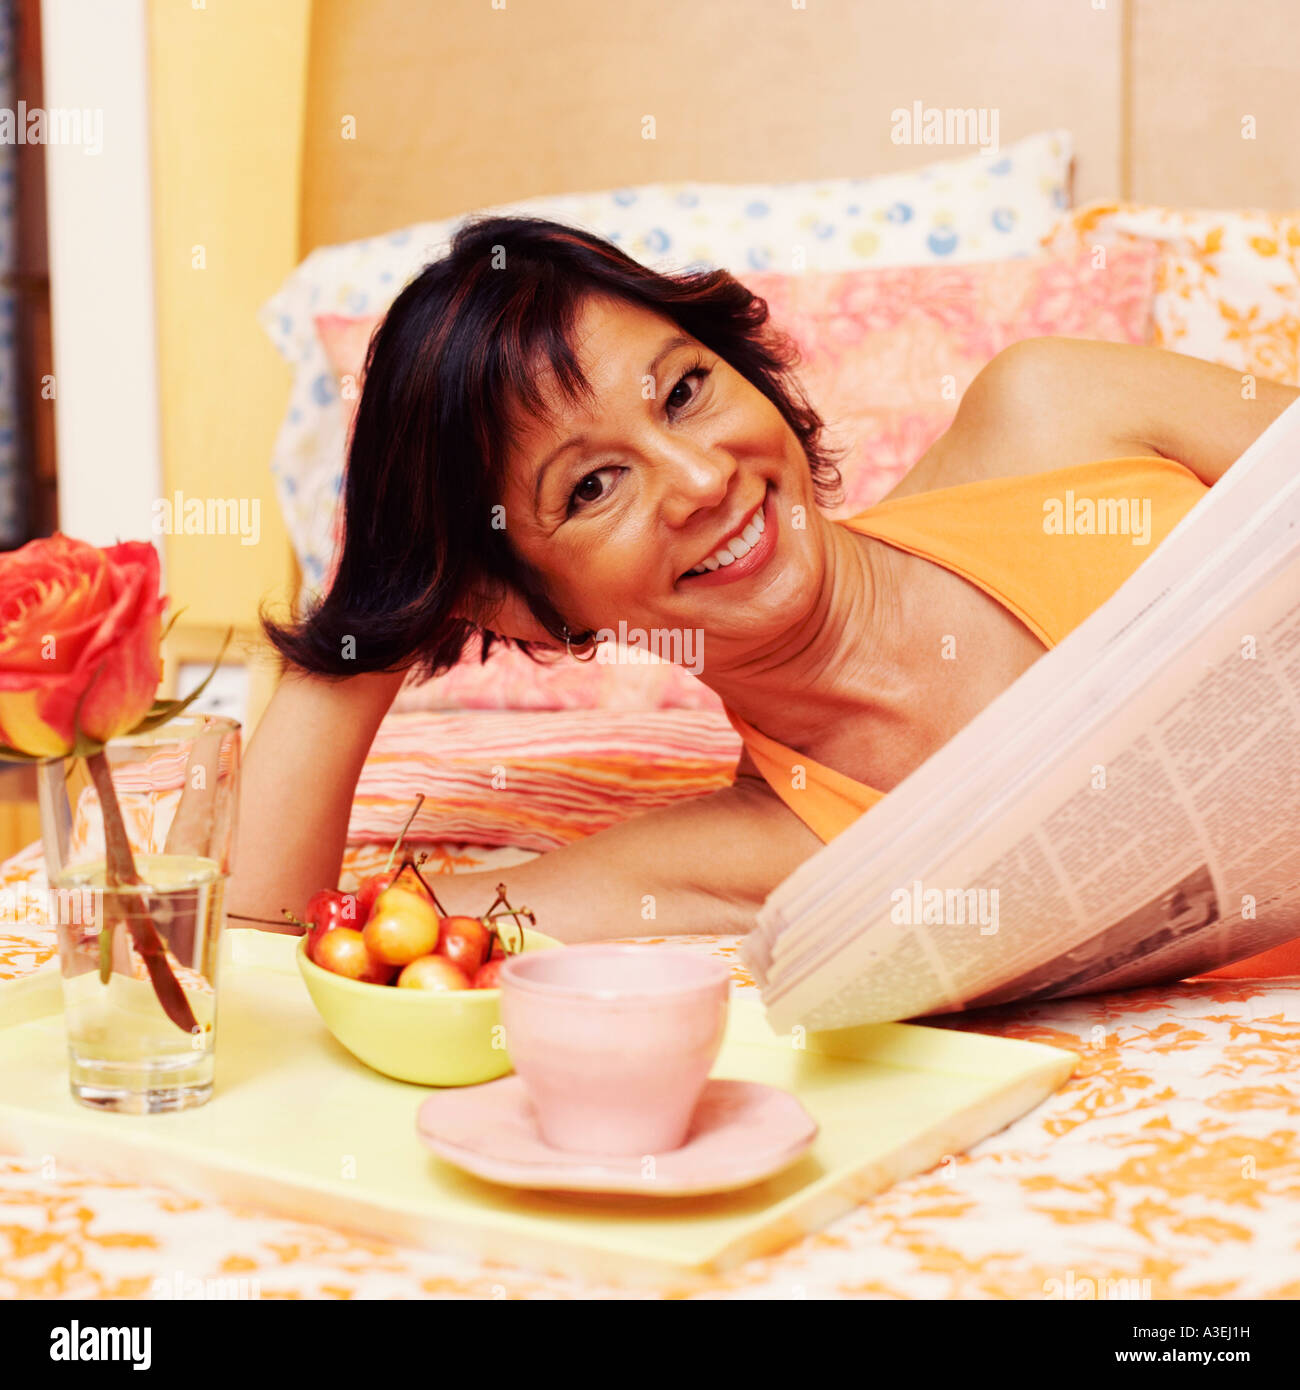 Portrait of a mature woman lying on the bed and holding a newspaper - Stock Image